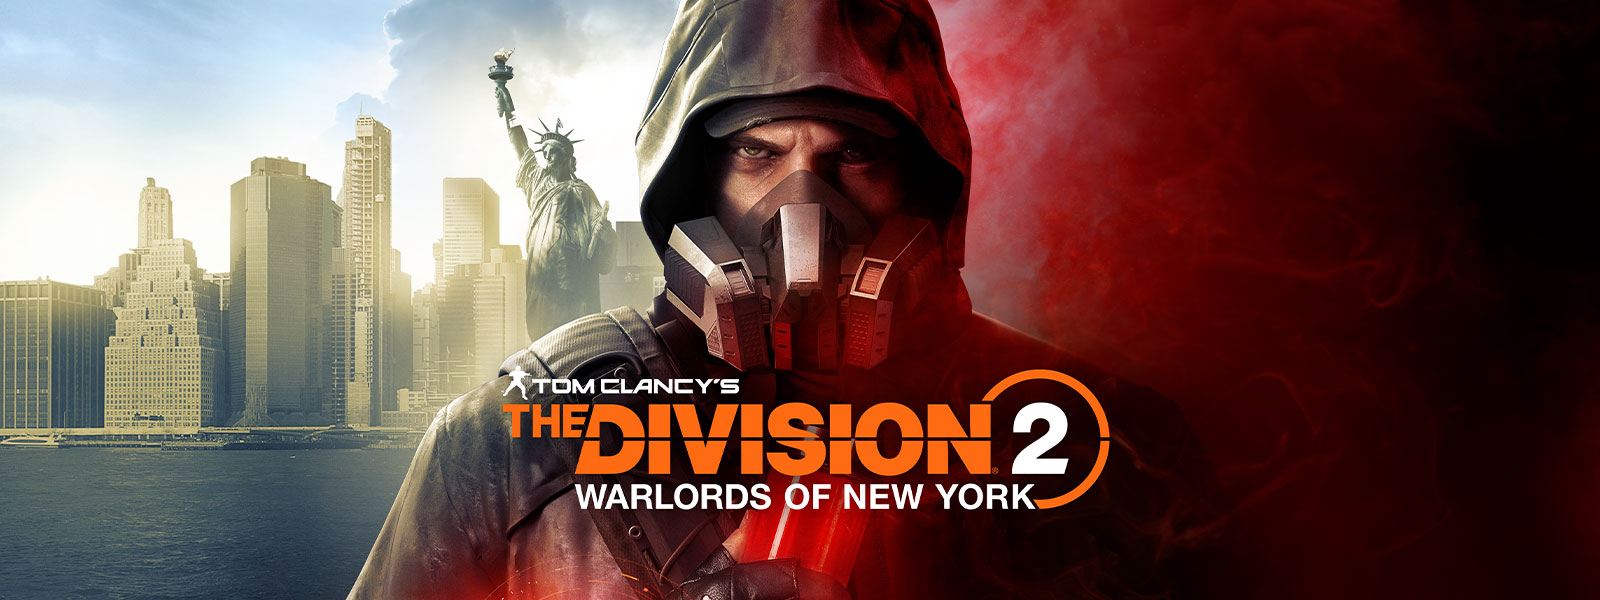 Tom Clancy's The Division 2 Warlords of New York, Aaron Keener wearing a gas mask stands in front of the Statue of Liberty